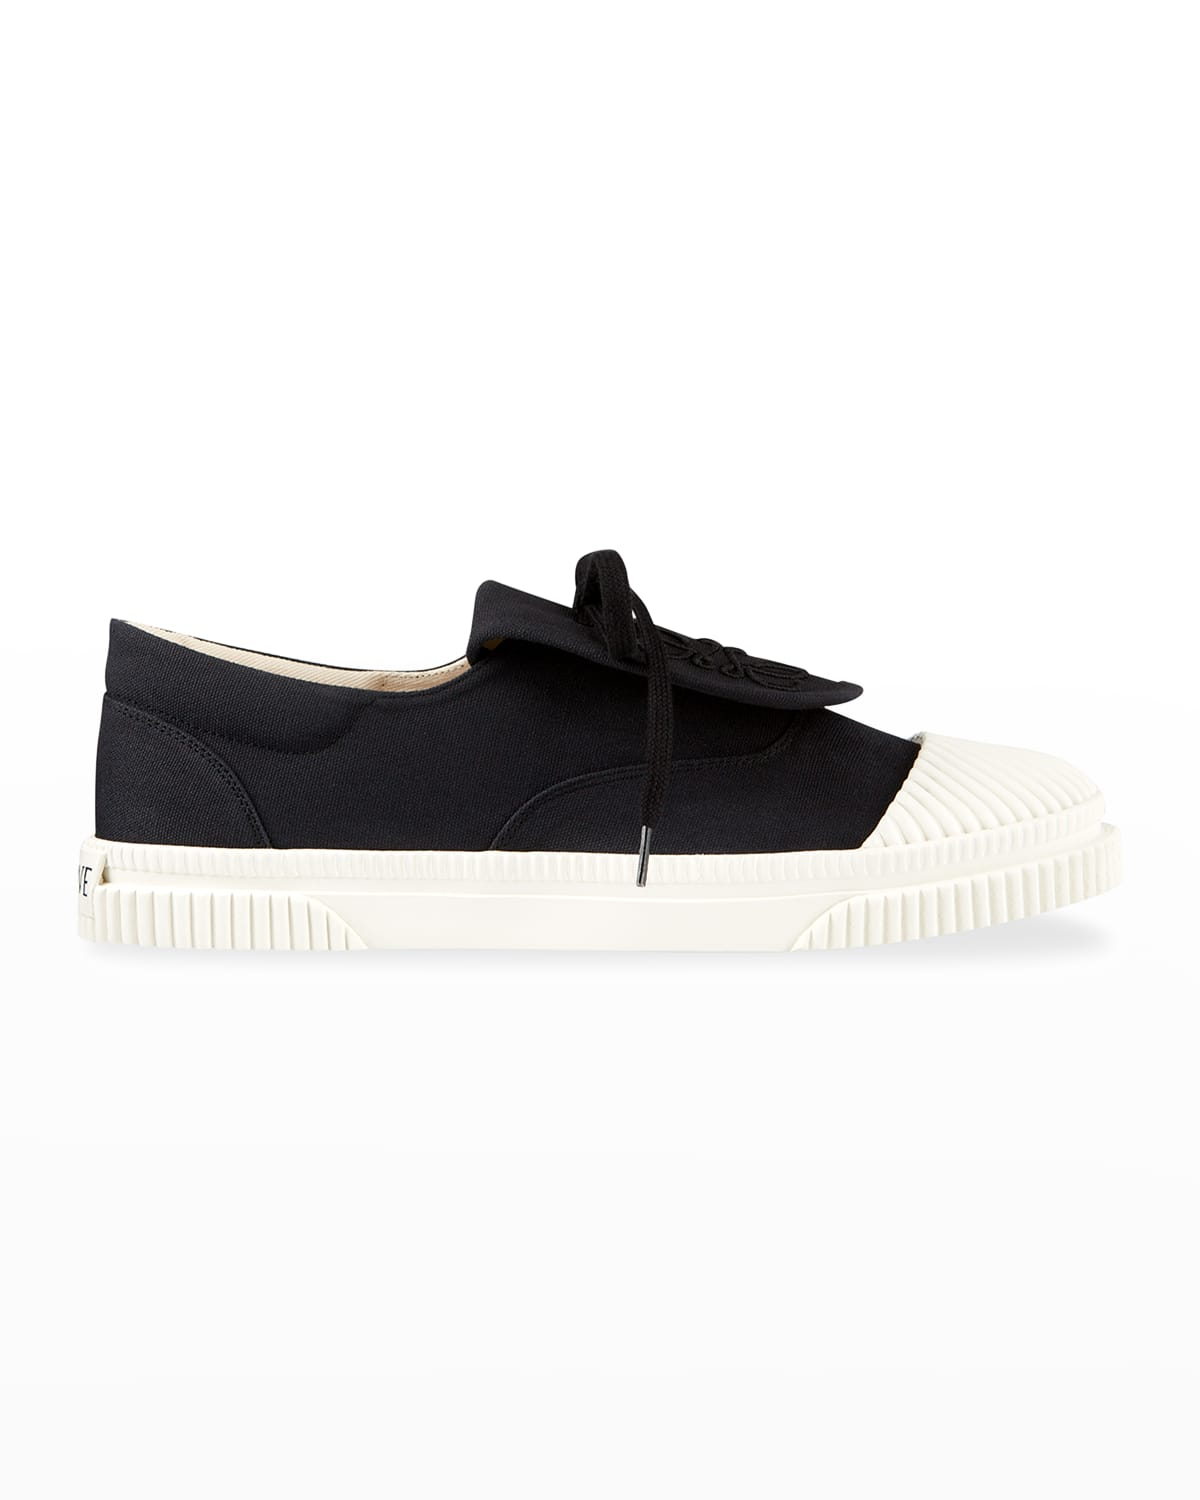 Anagram Embroidered Flap Low-Top Sneakers